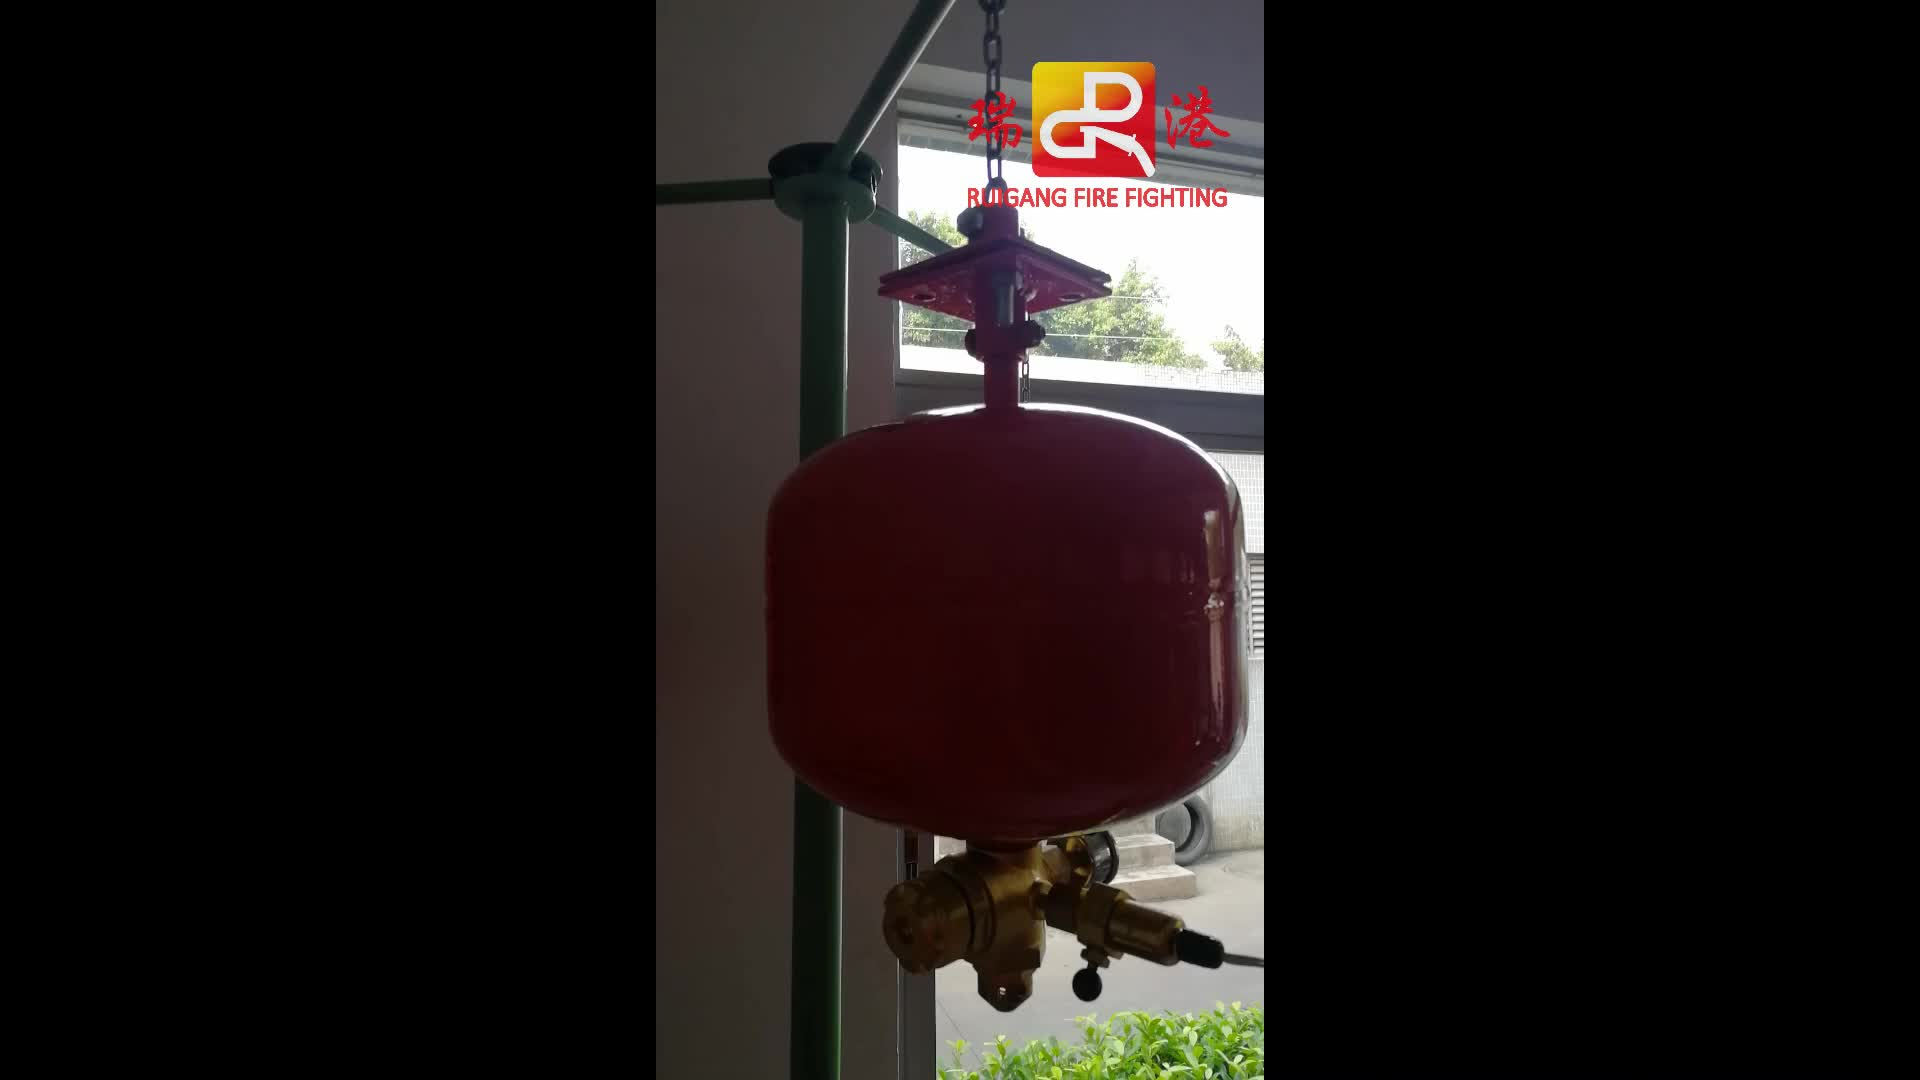 modular automatic fire extinguisher,  FM200 fire protection equipment, gas automatic fire fighting system